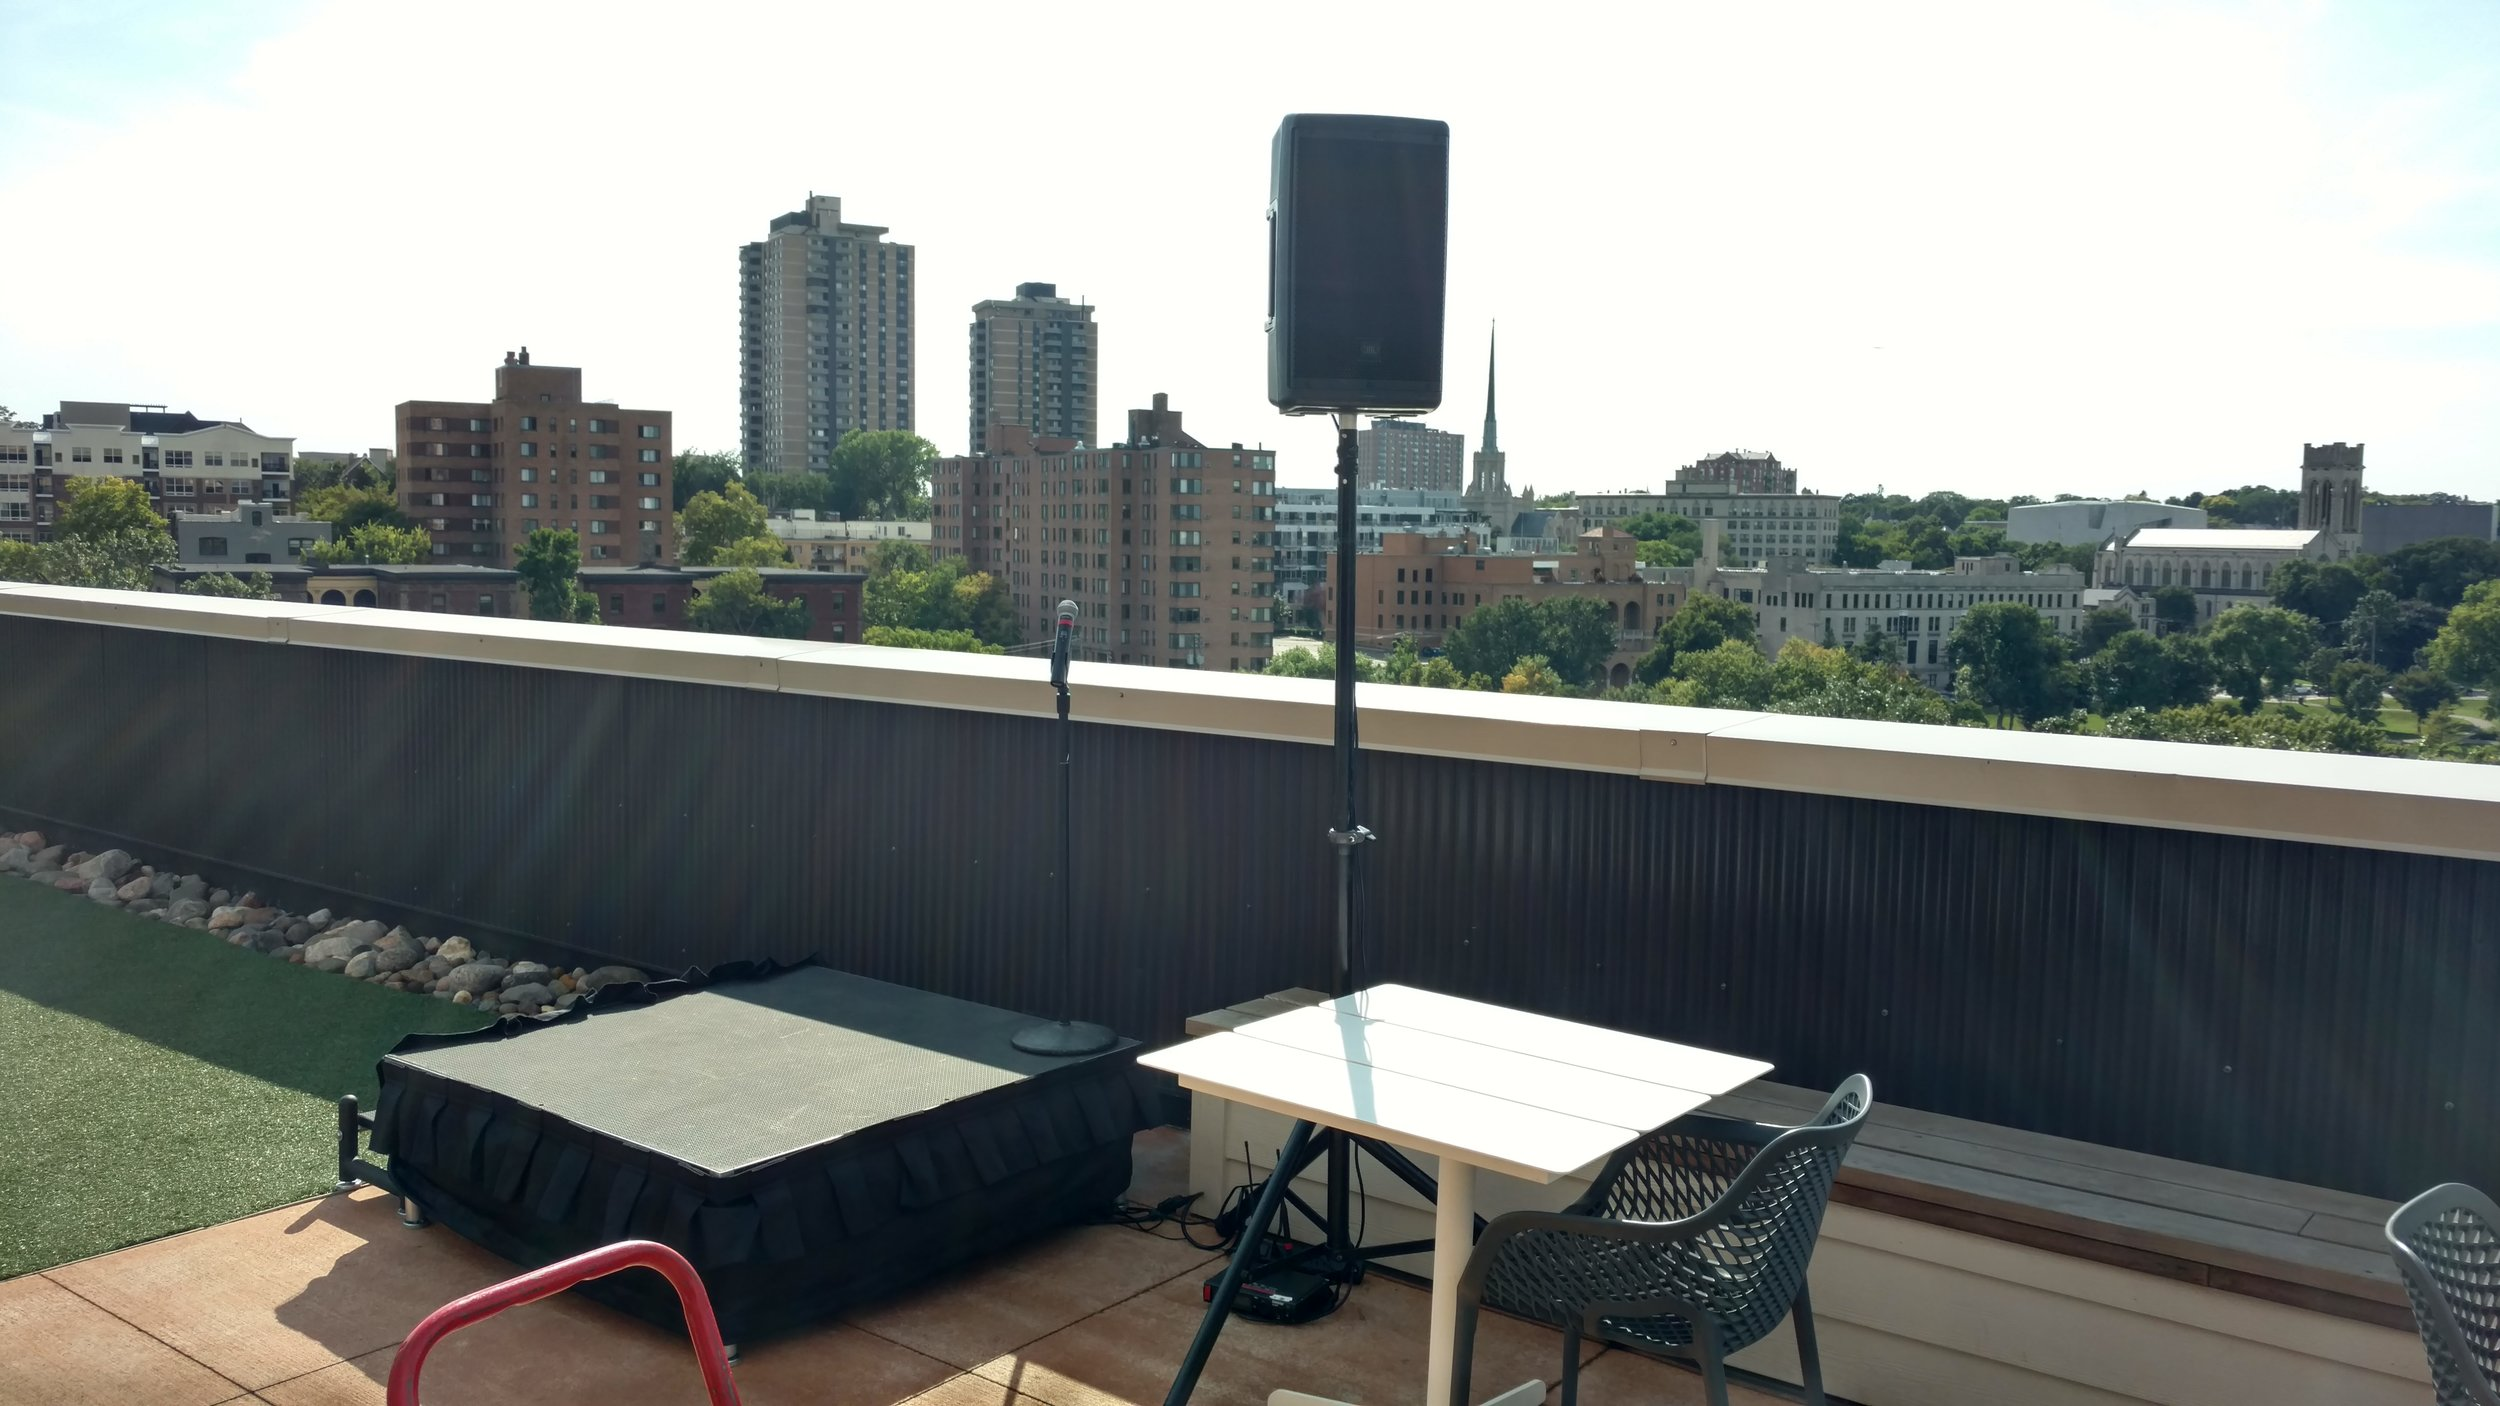 Picture of Speaker, Microphone and Stage rental in Downtown Minneapolis